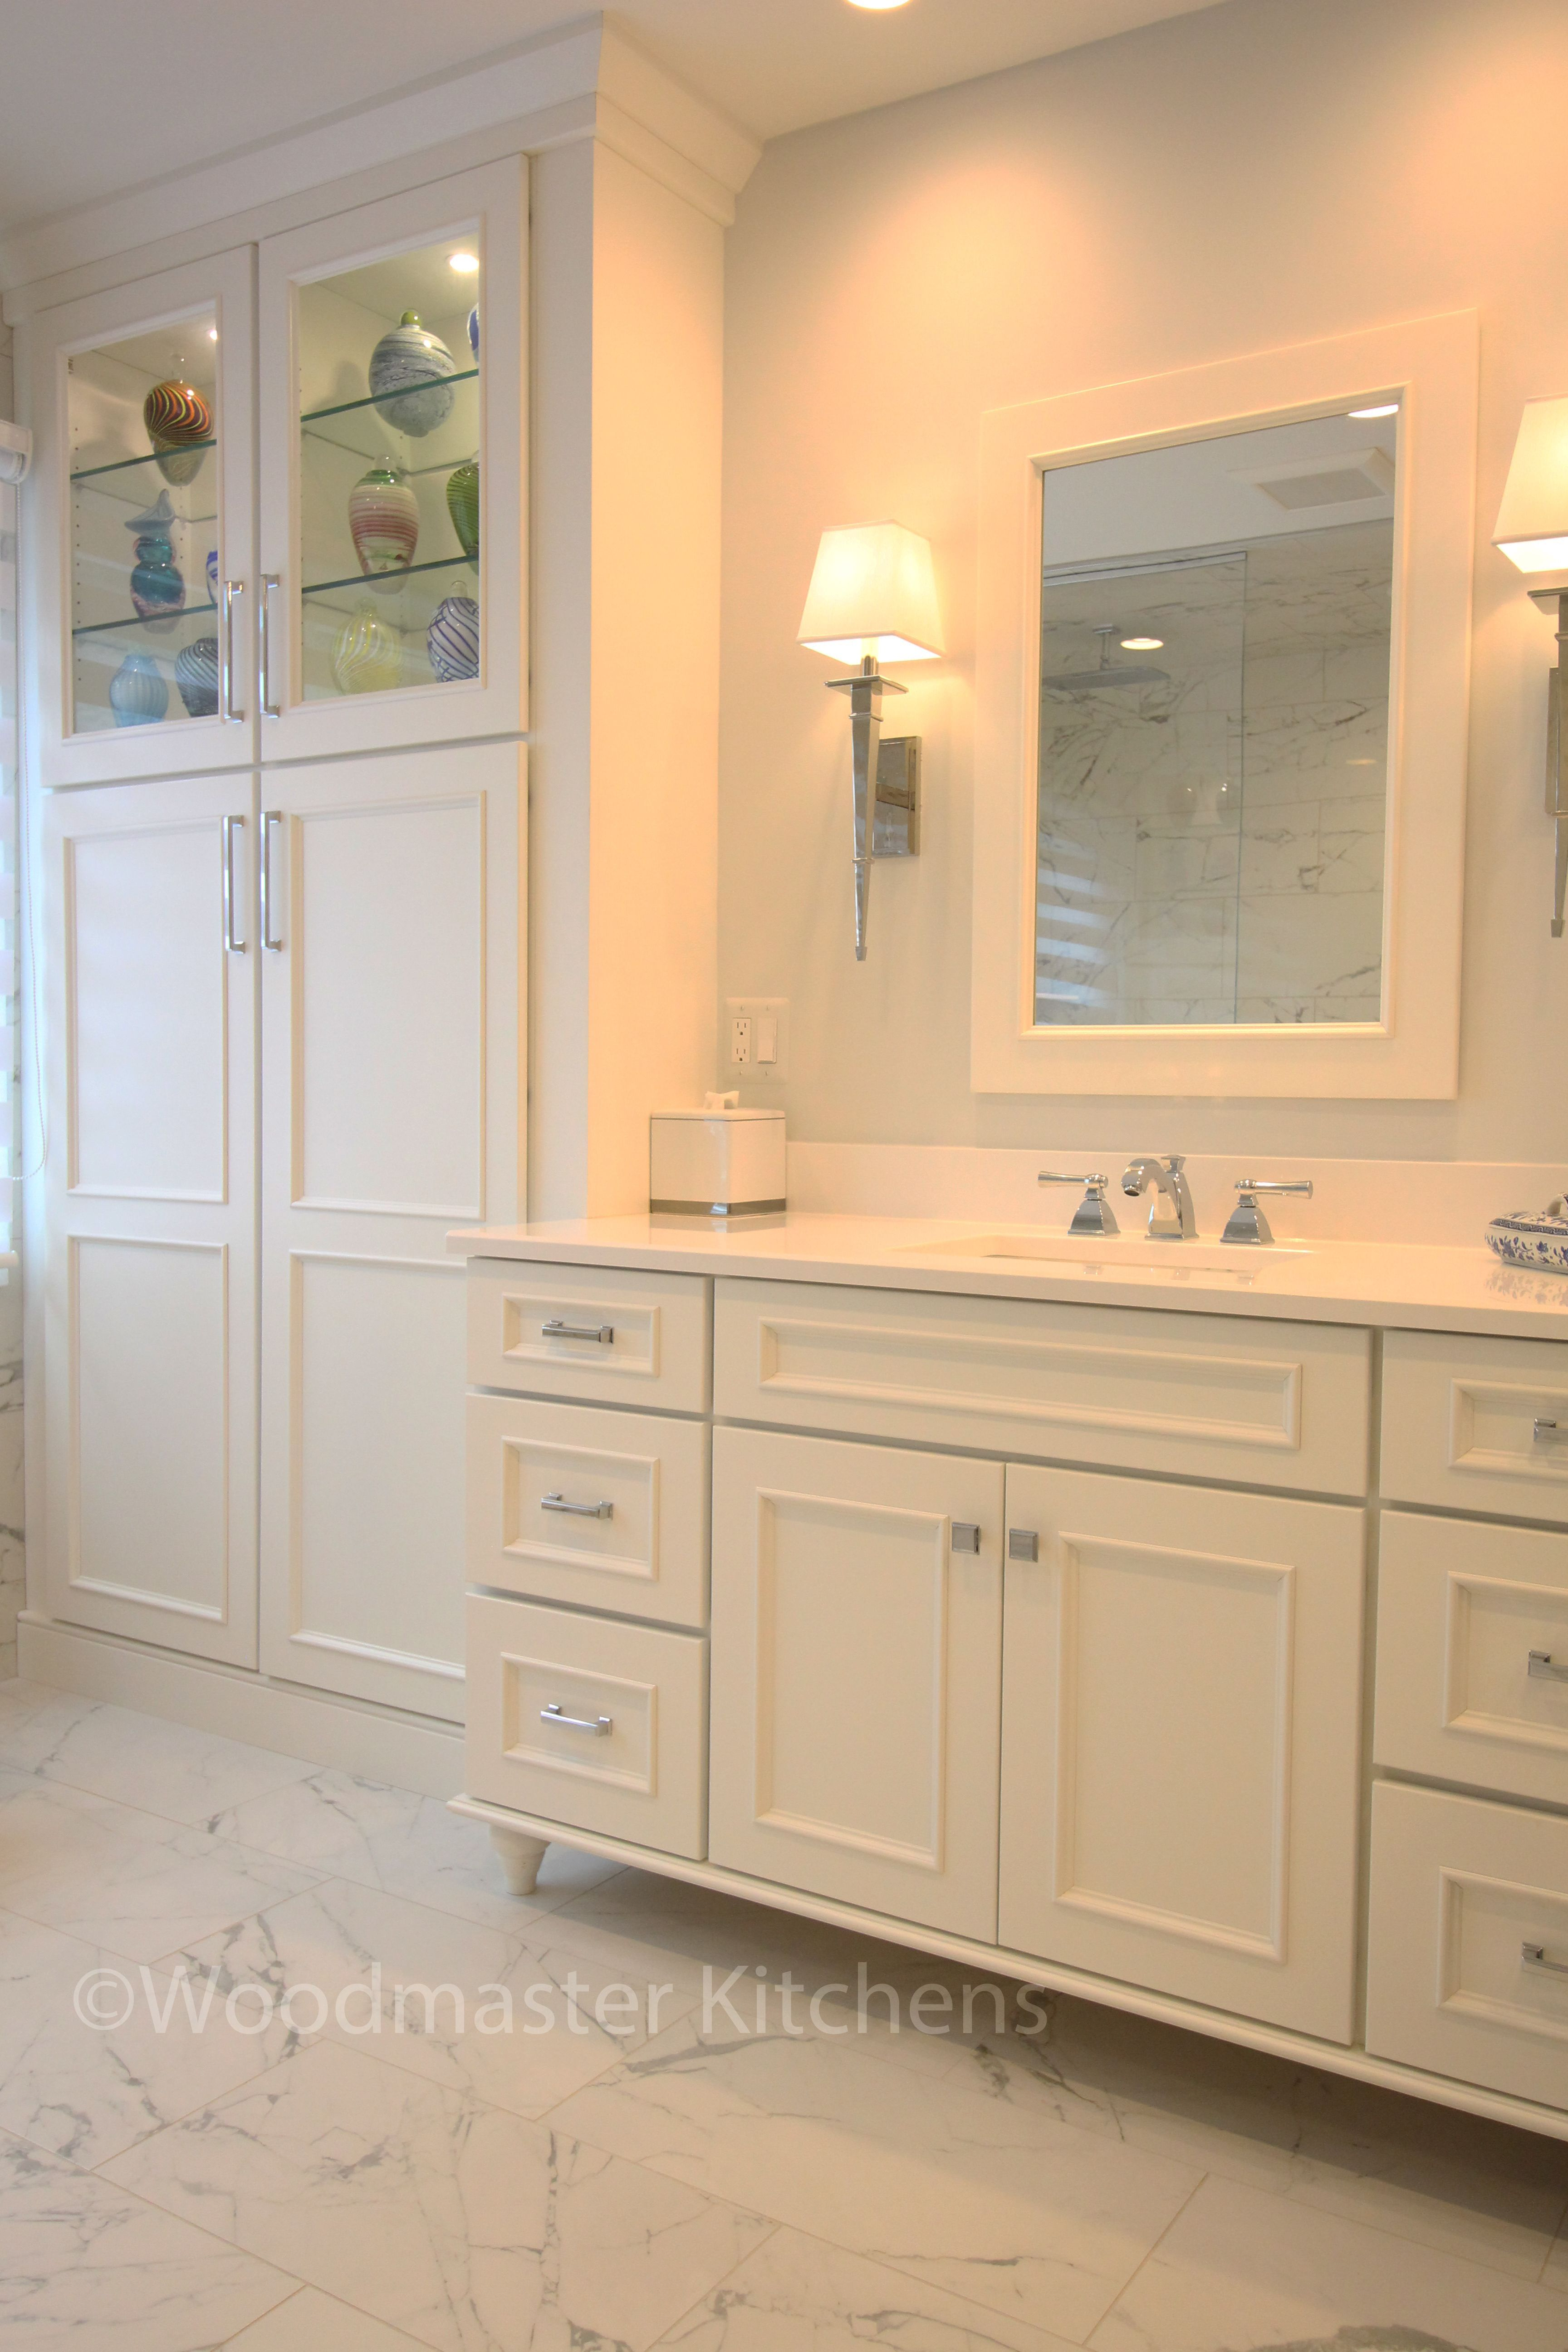 This Sophisticated Master Bathroom Design Complements The Large